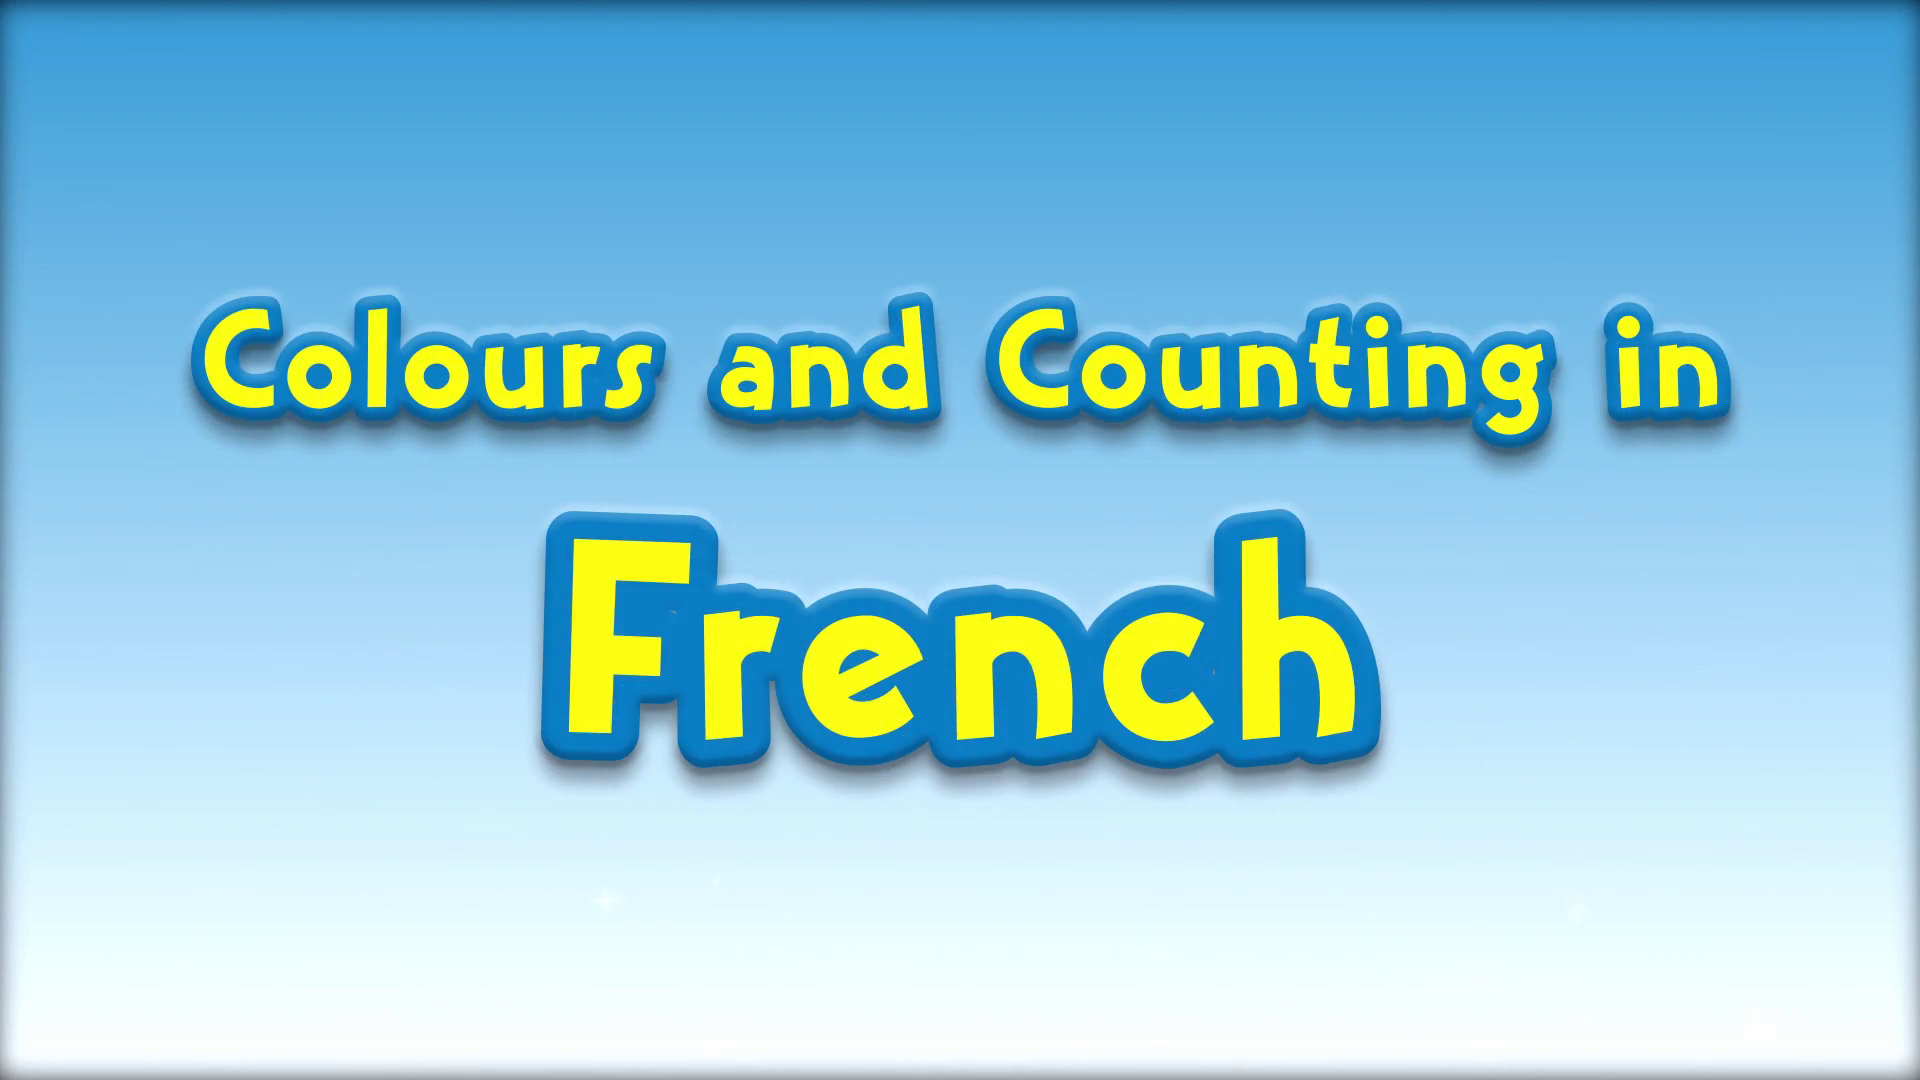 Colours and Counting in French